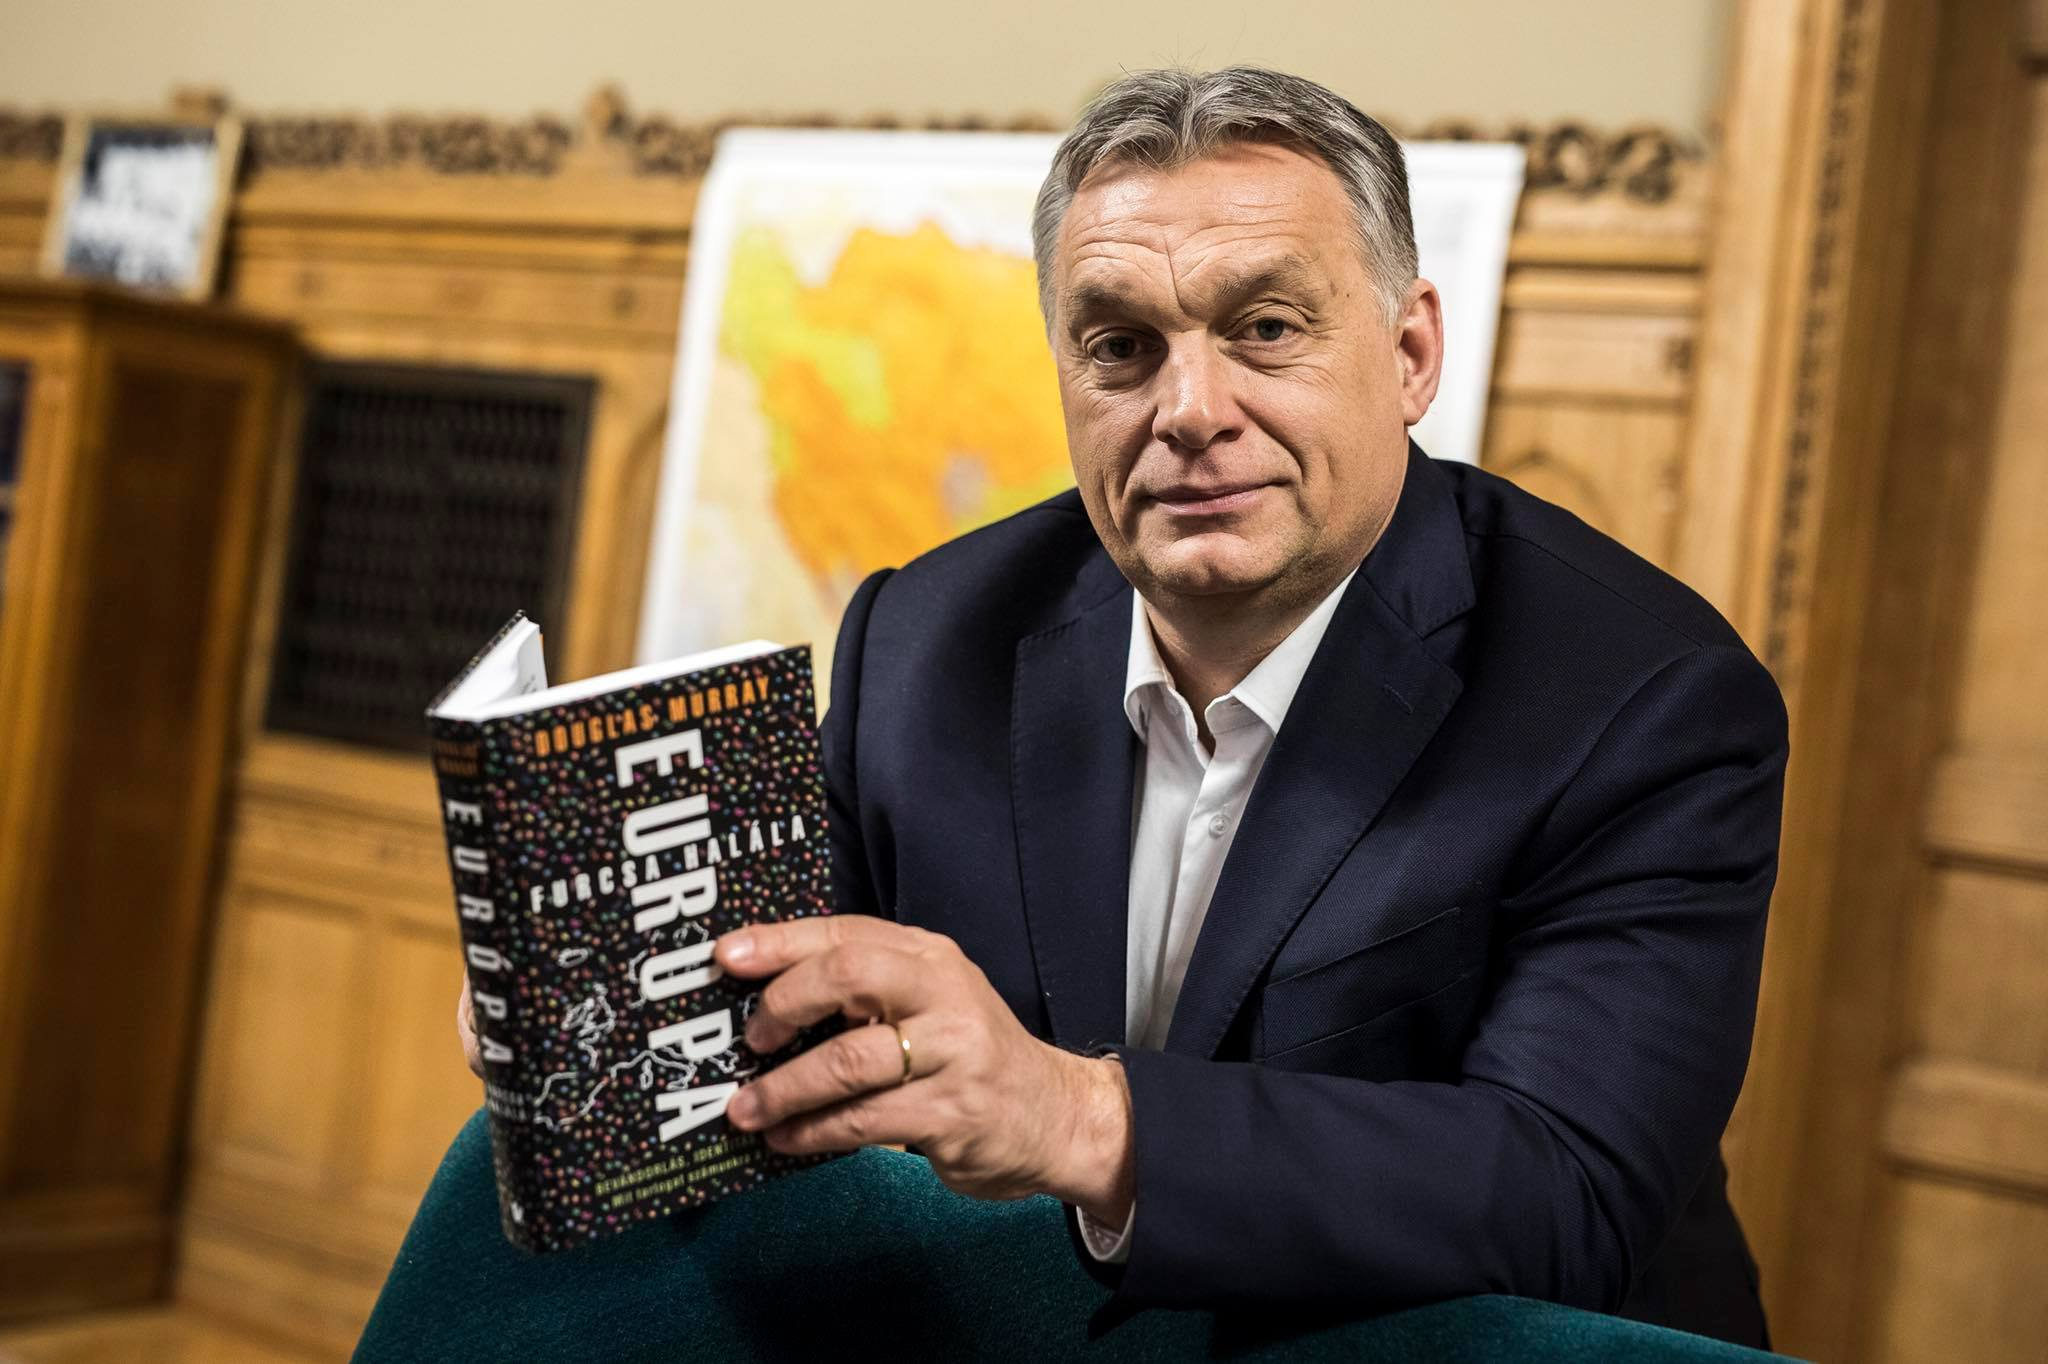 Constitutional Indentity in Hungary is whatever Viktor Orbán wants it to be